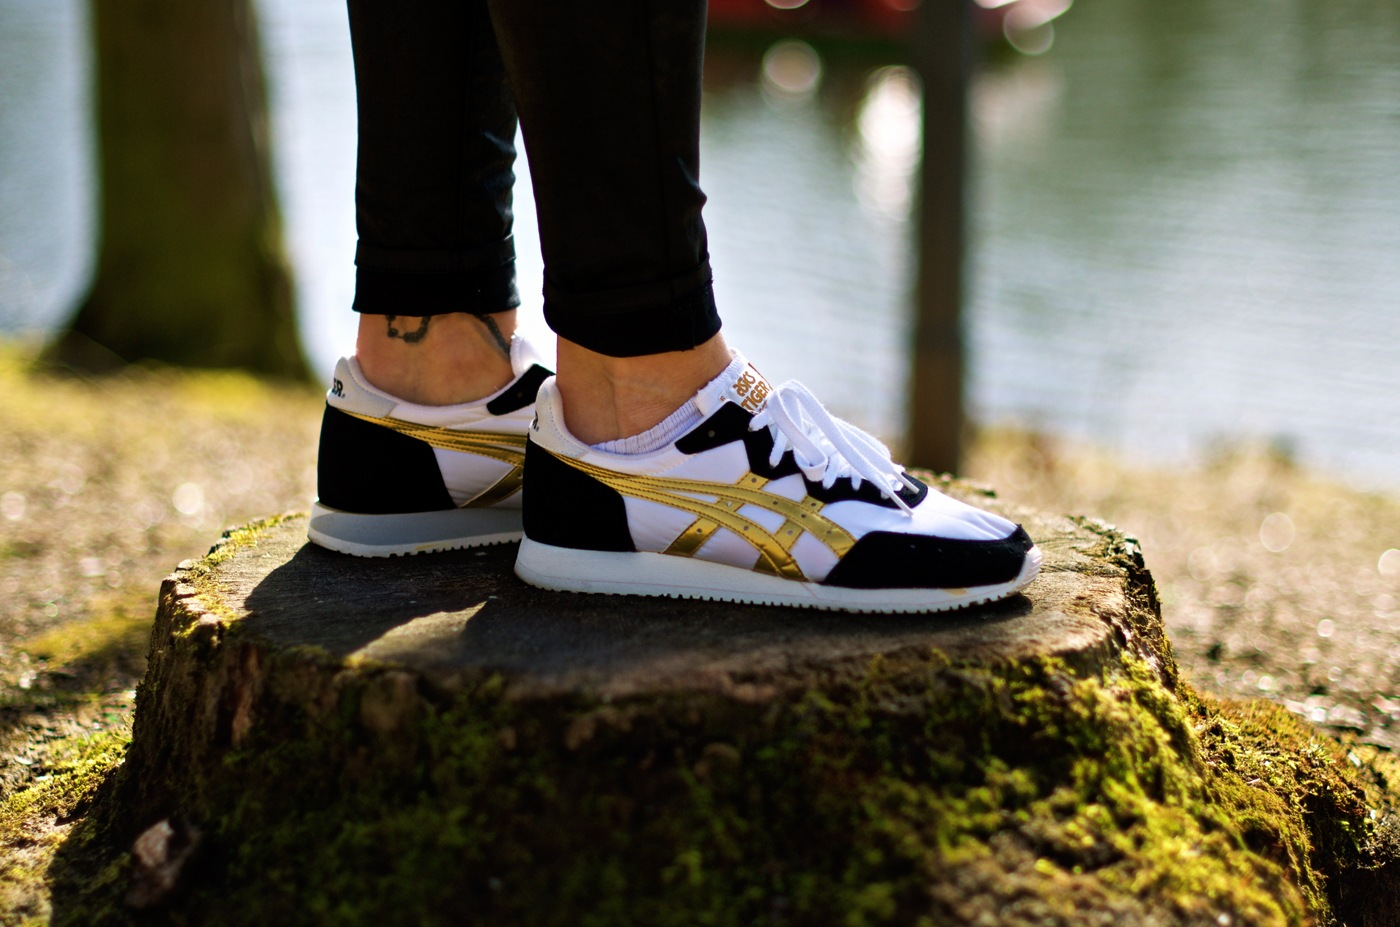 Asics Onitsuka Tiger Lady Jayhawk On Feet Dead Stock